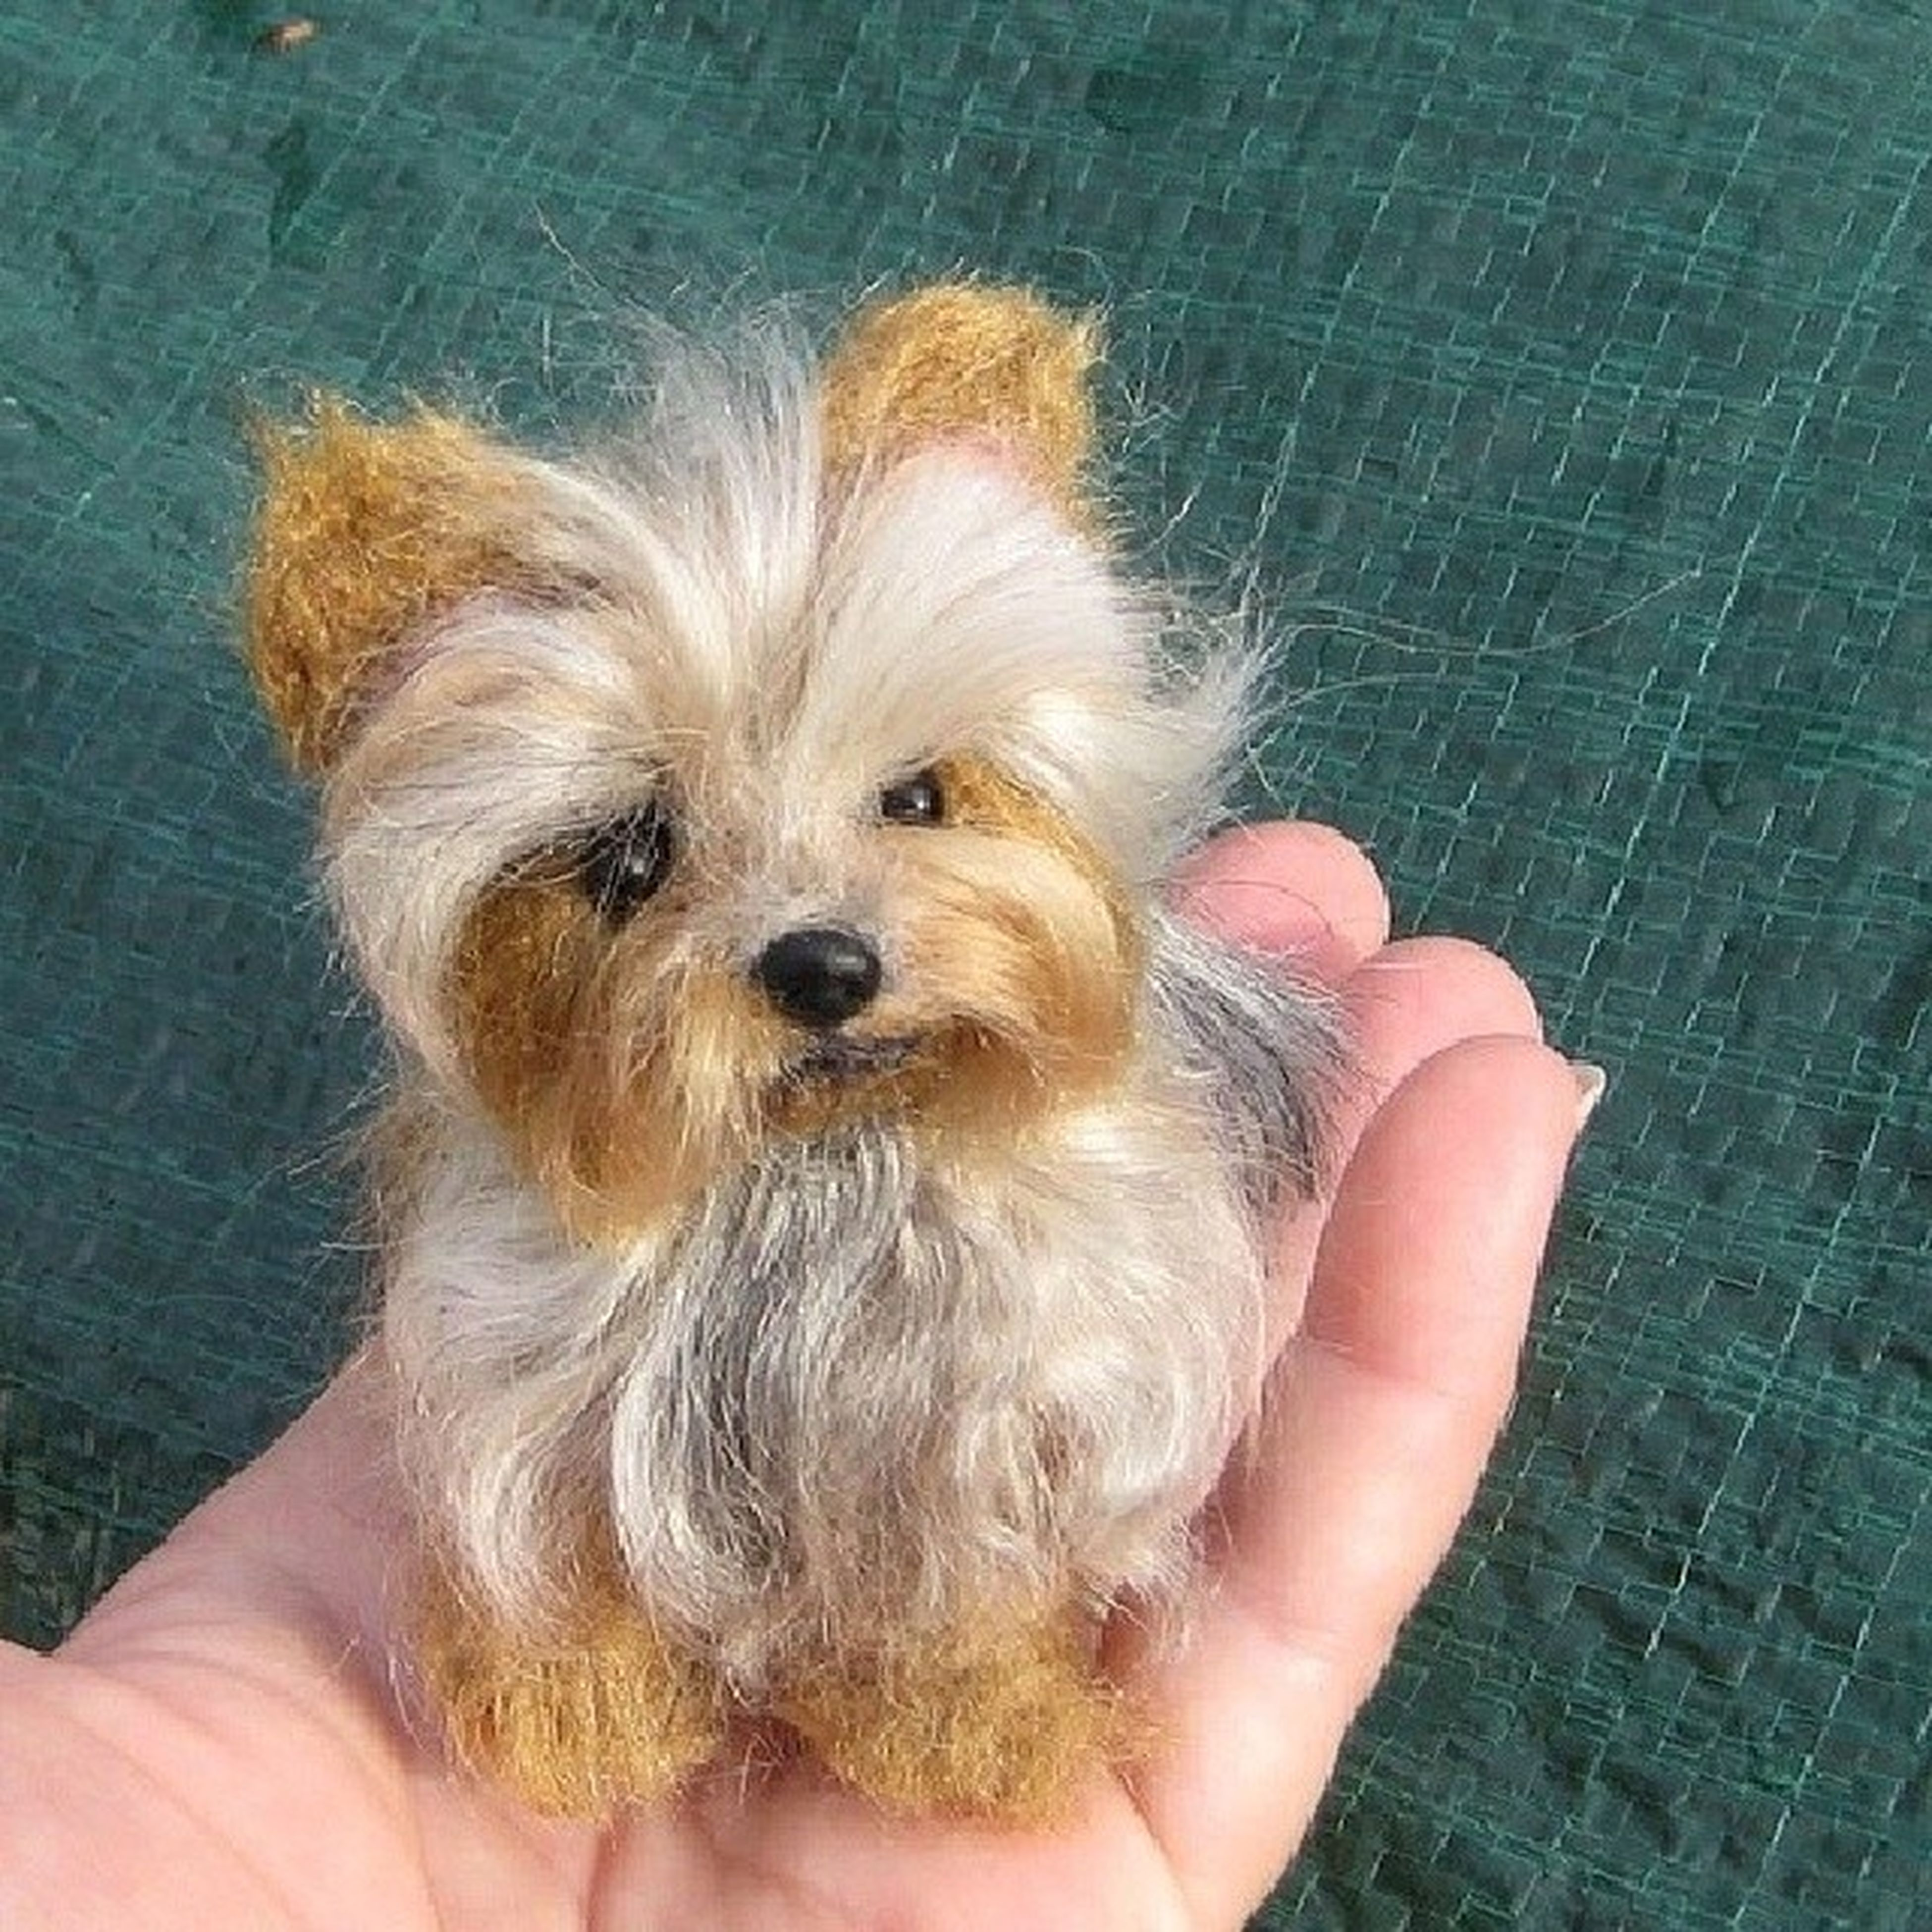 person, animal themes, one animal, holding, pets, part of, domestic animals, personal perspective, human finger, unrecognizable person, indoors, cropped, lifestyles, mammal, young animal, high angle view, dog